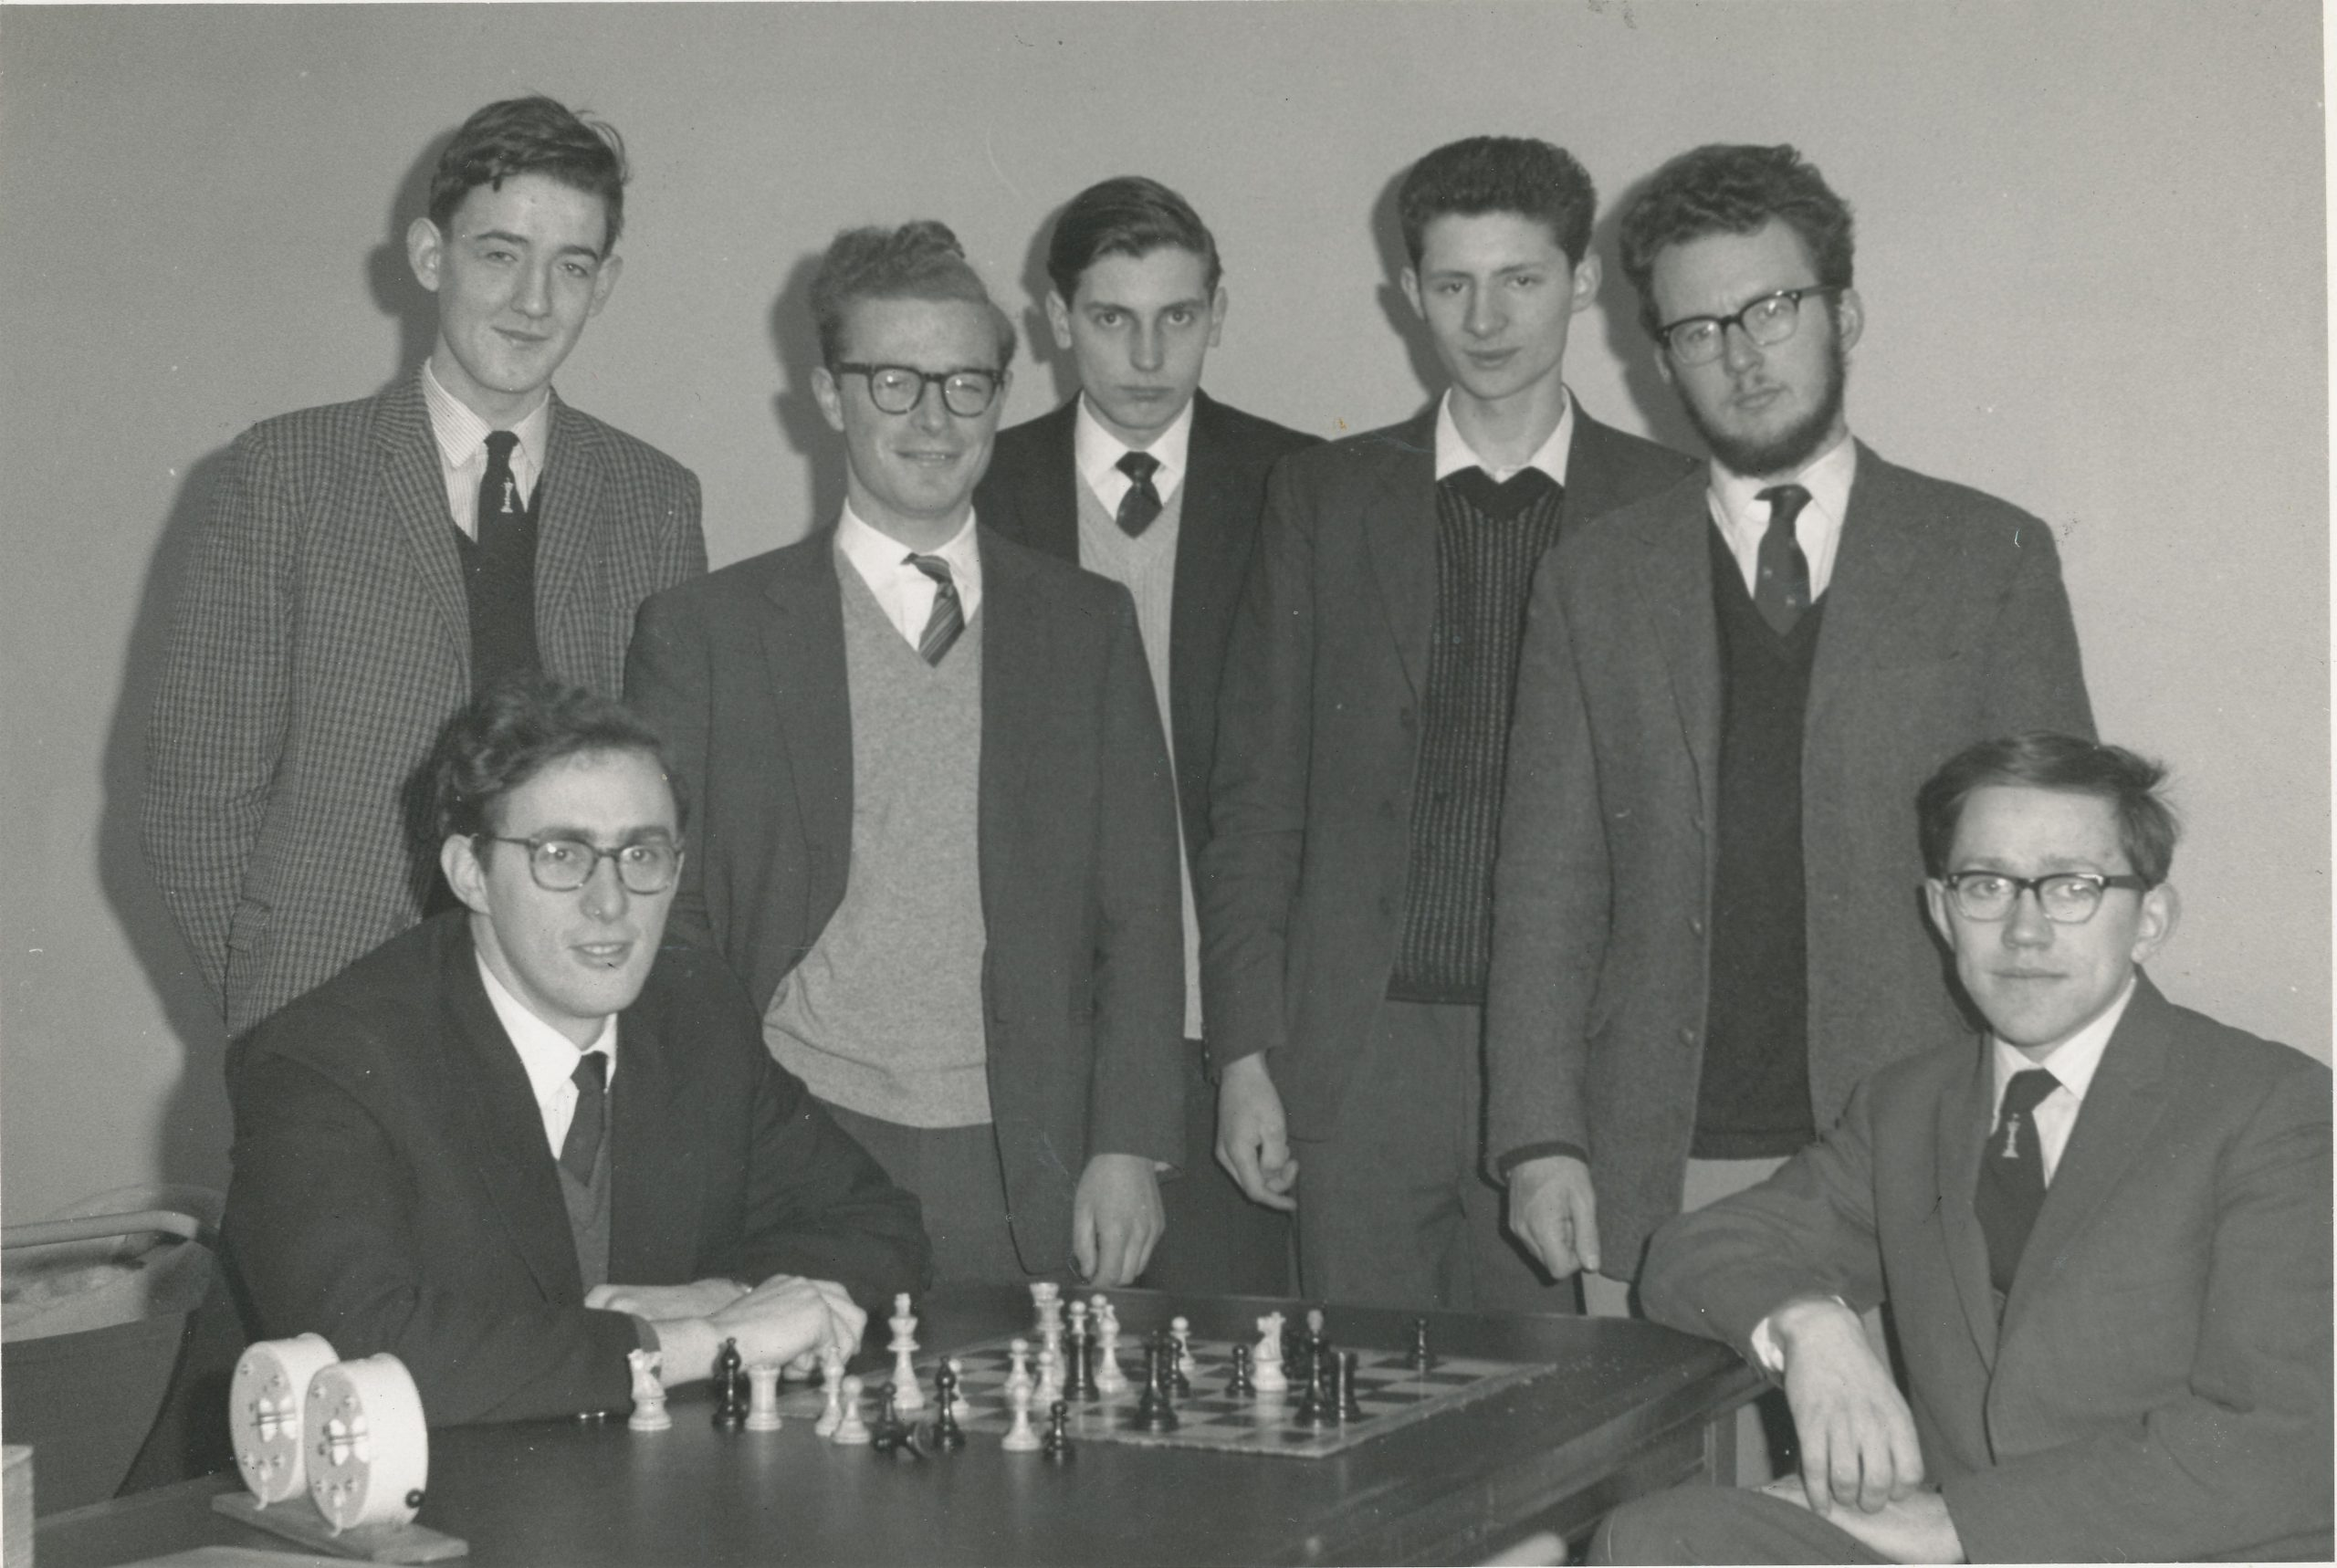 The winning 1963 Oxford Varsity match team : From left to right (standing): PN Lee, JWF May, GC Taylor, AIN Brodie, PD Yerbury; (sitting) JK Footner, RW Morgan. Thanks : John Saunders in Britbase.